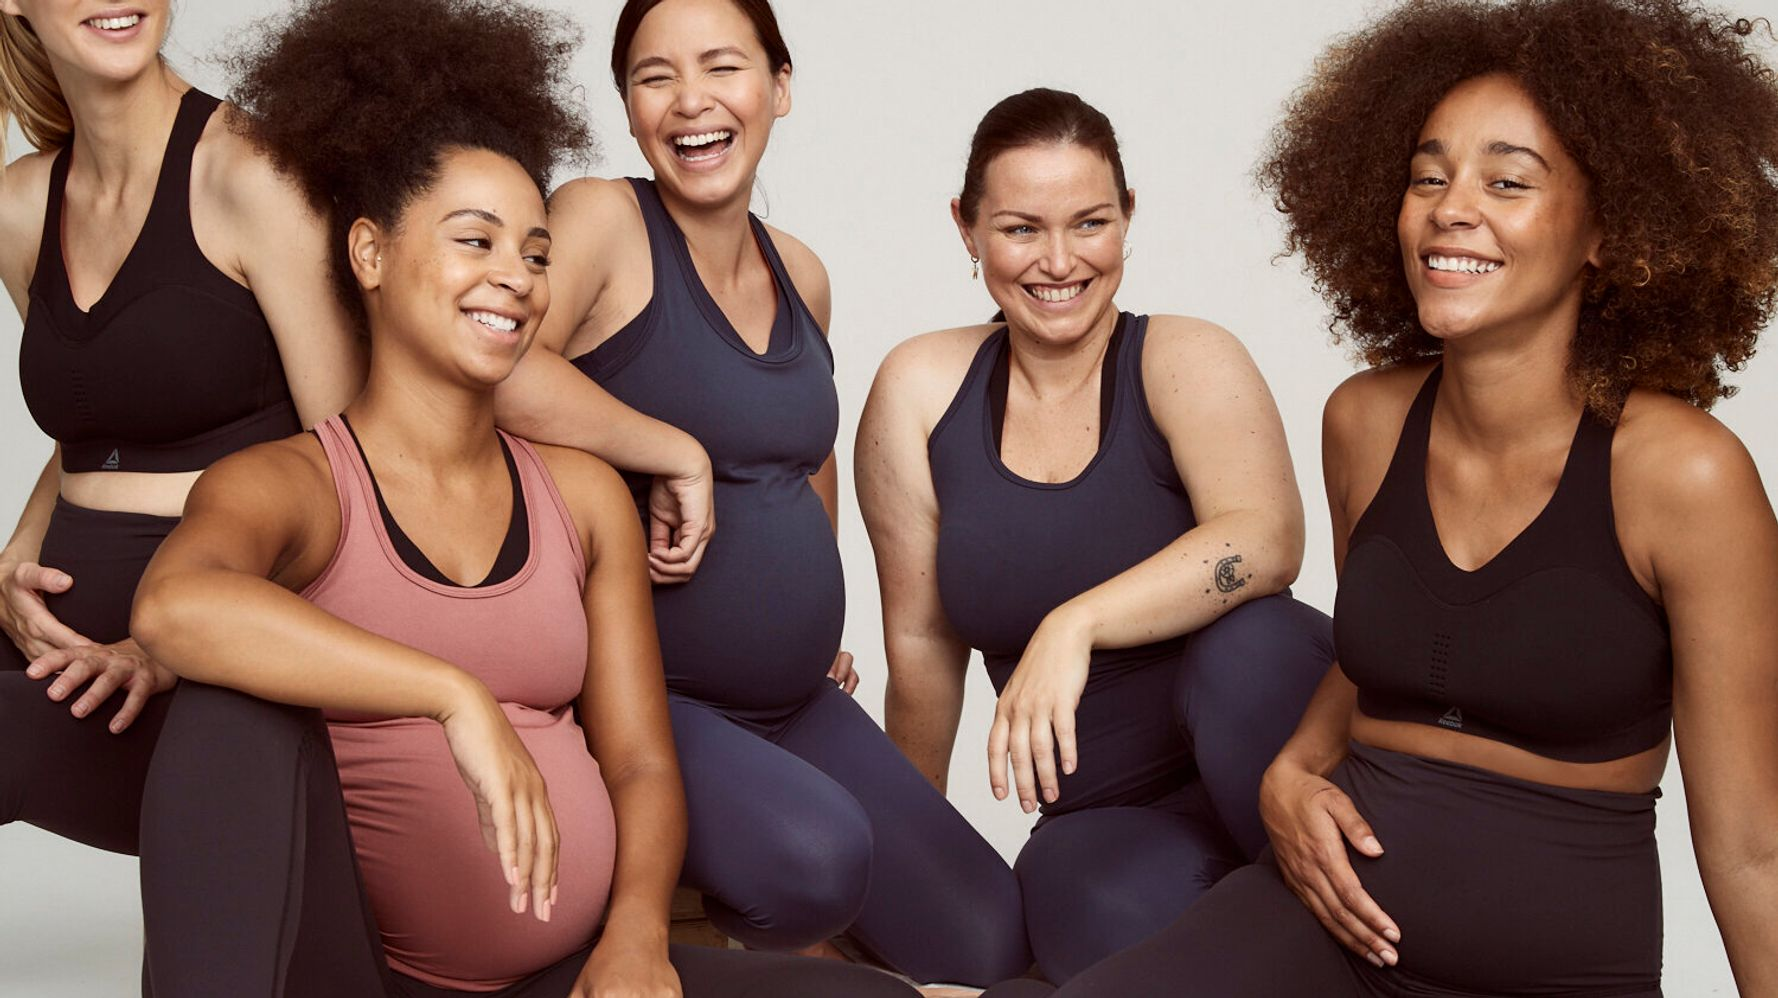 Reebok Launches Maternity Fitness Collection Designed To Fit Every Stage Of Pregnancy